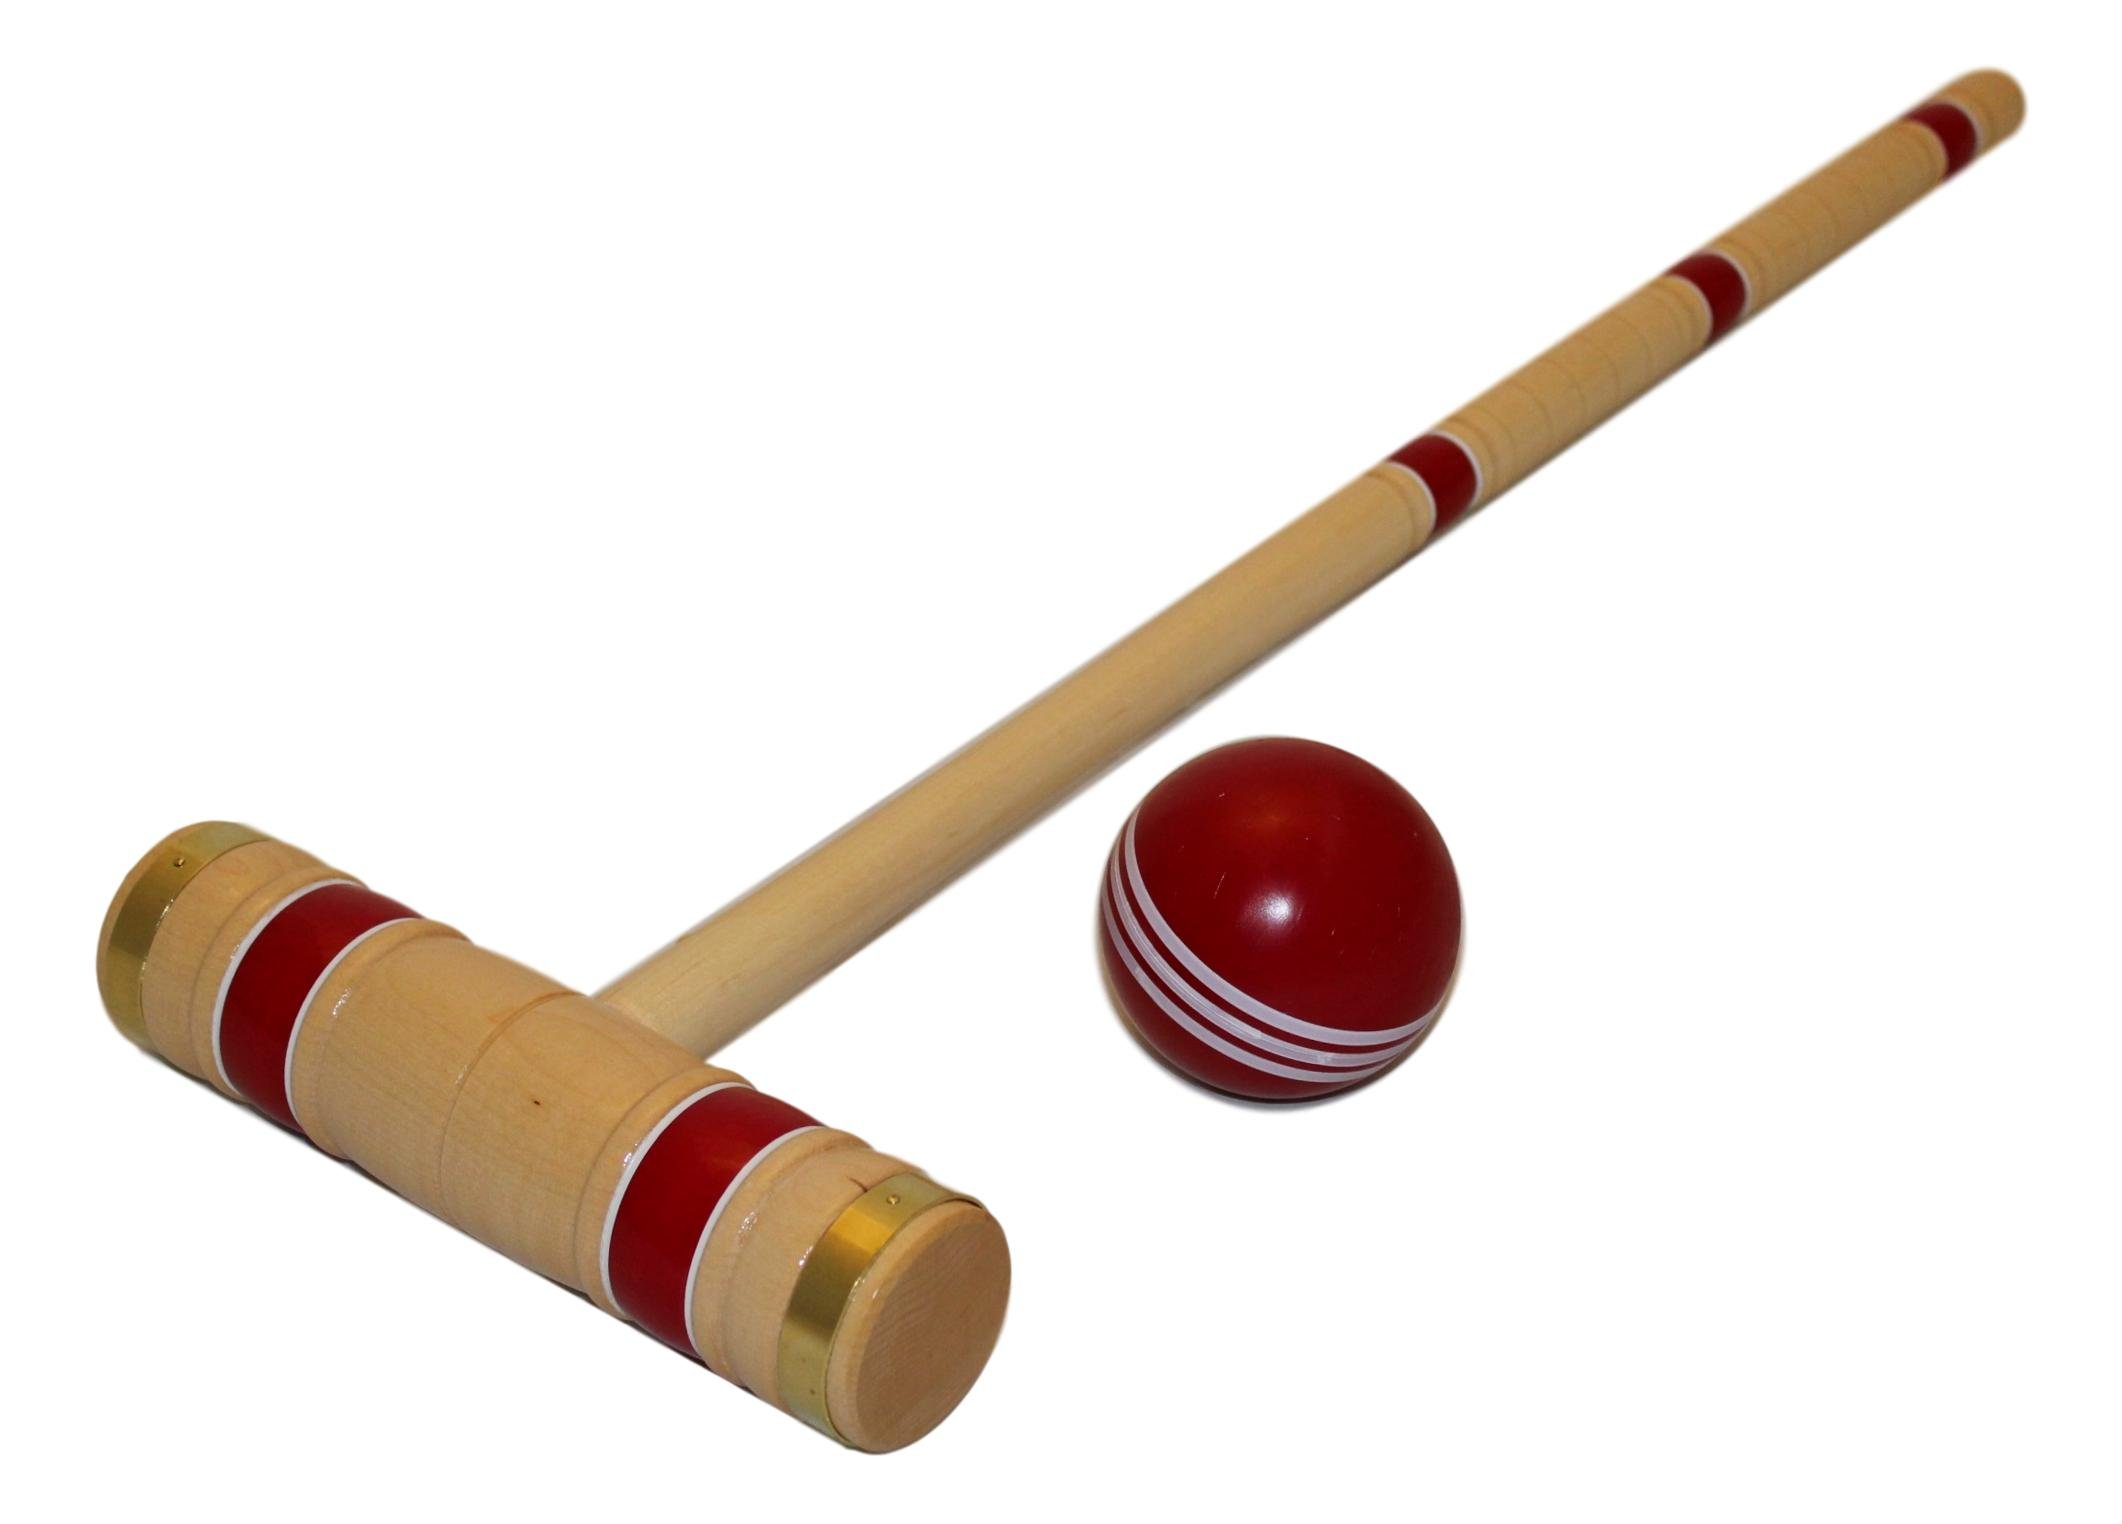 Amish-Crafted Deluxe Maple-Wood Croquet Game Set, 6 Player (Three 28'' Handles/Three 32'' Handles) by AmishToyBox.com (Image #4)